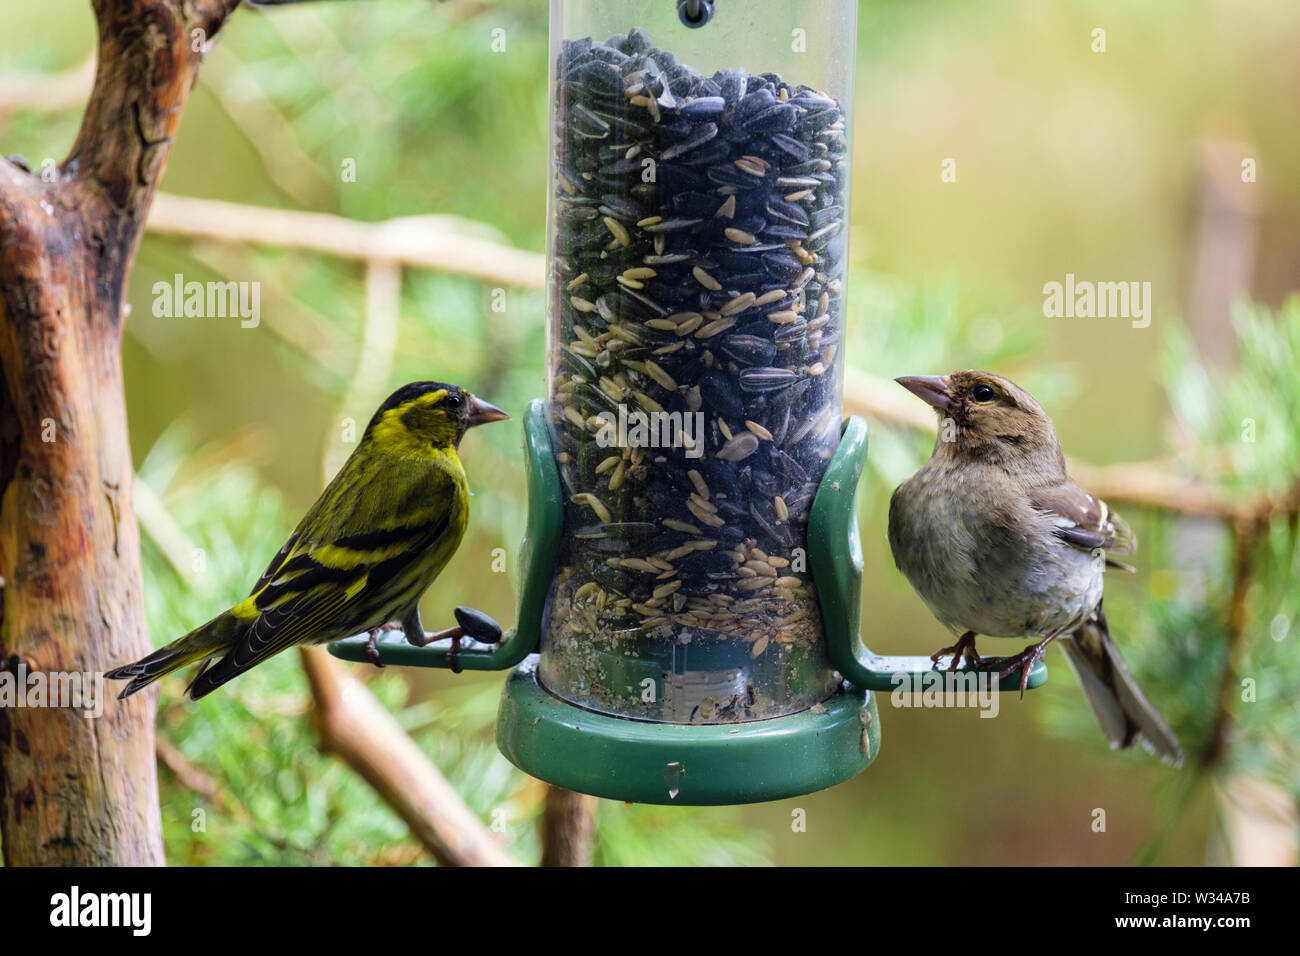 A male Siskin (Carduelis spinus) finch and a female Chaffinch (Fringilla coelebs) on a garden bird seed feeder in a pine forest. Scotland, UK, Britain - Stock Image